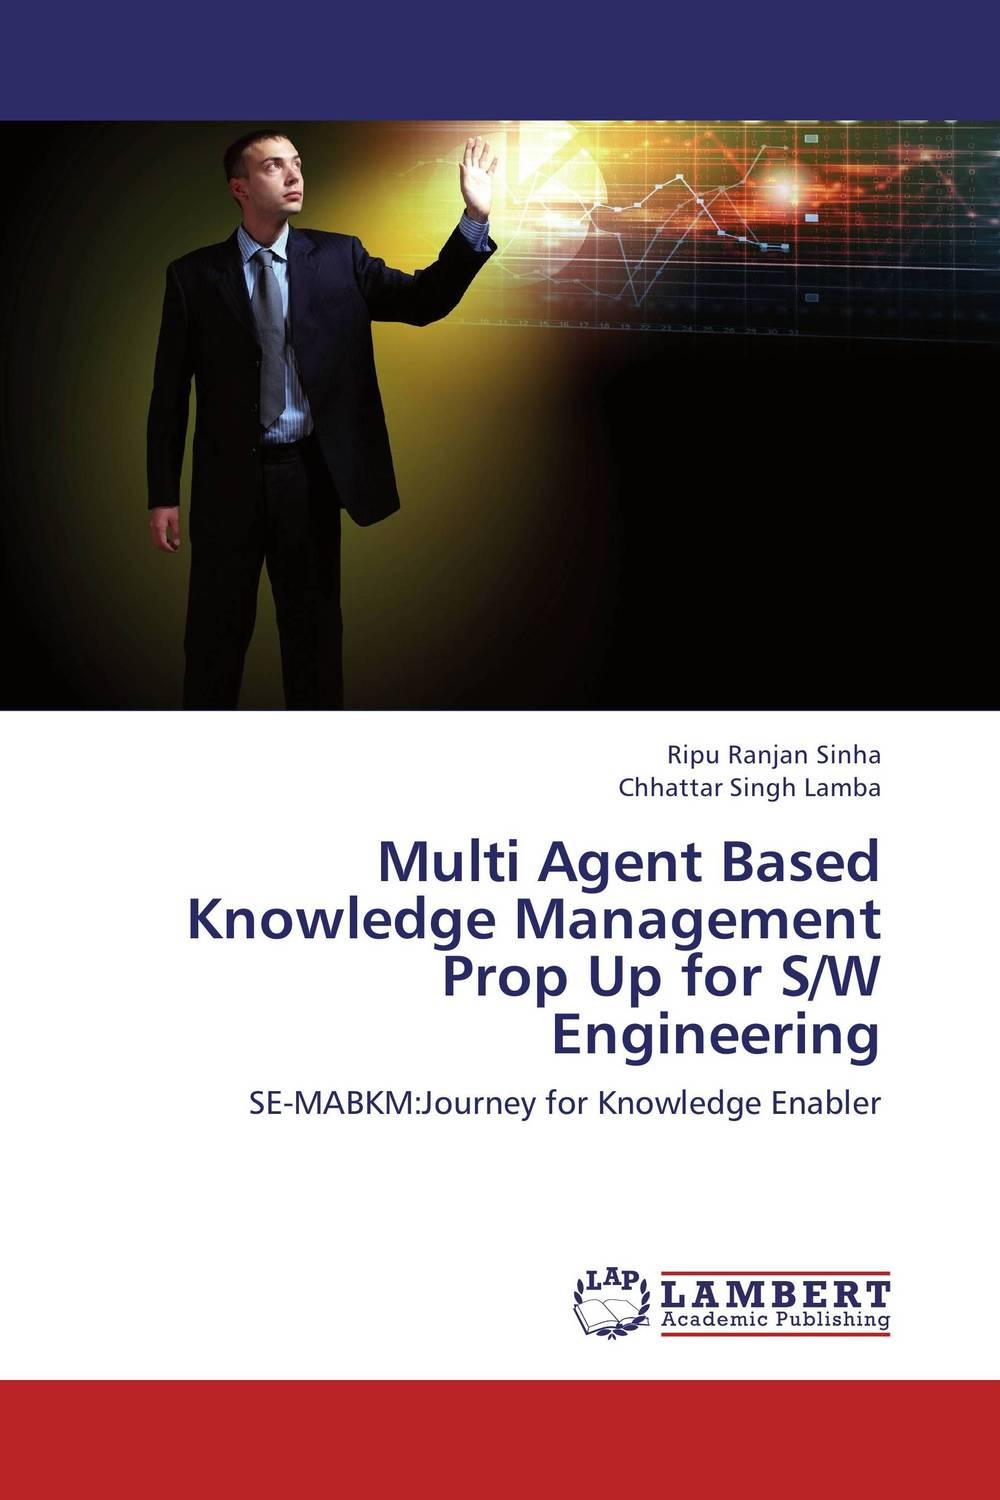 Multi Agent Based Knowledge Management Prop Up for S/W Engineering semantic similarity measures for knowledge engineering